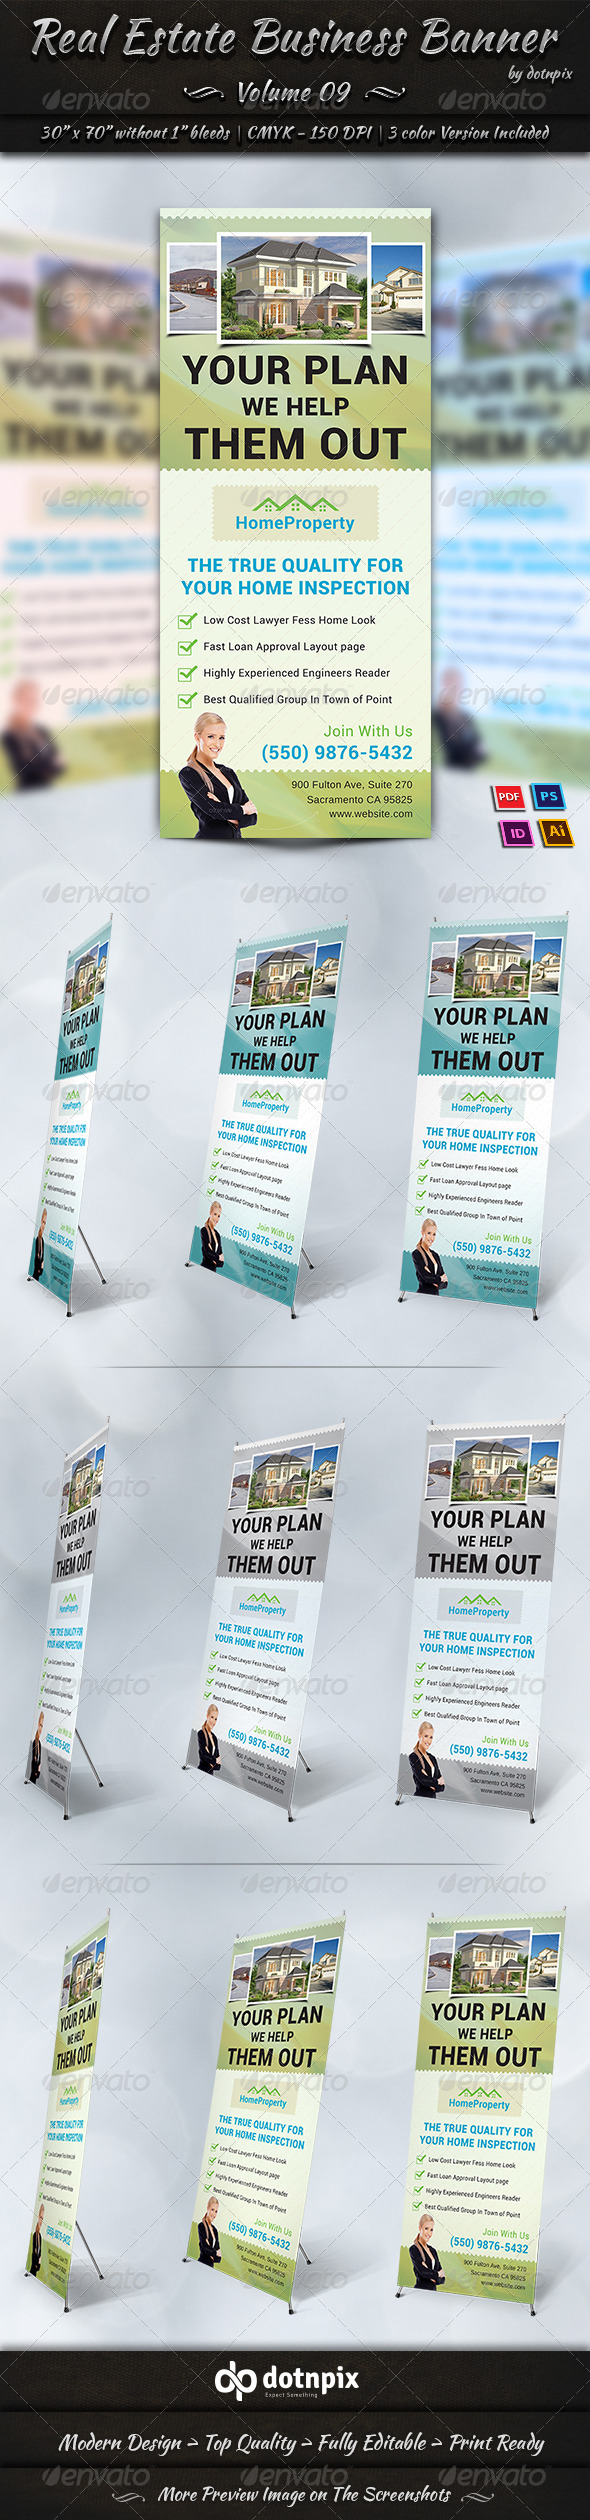 Real Estate Business Banner Volume 9